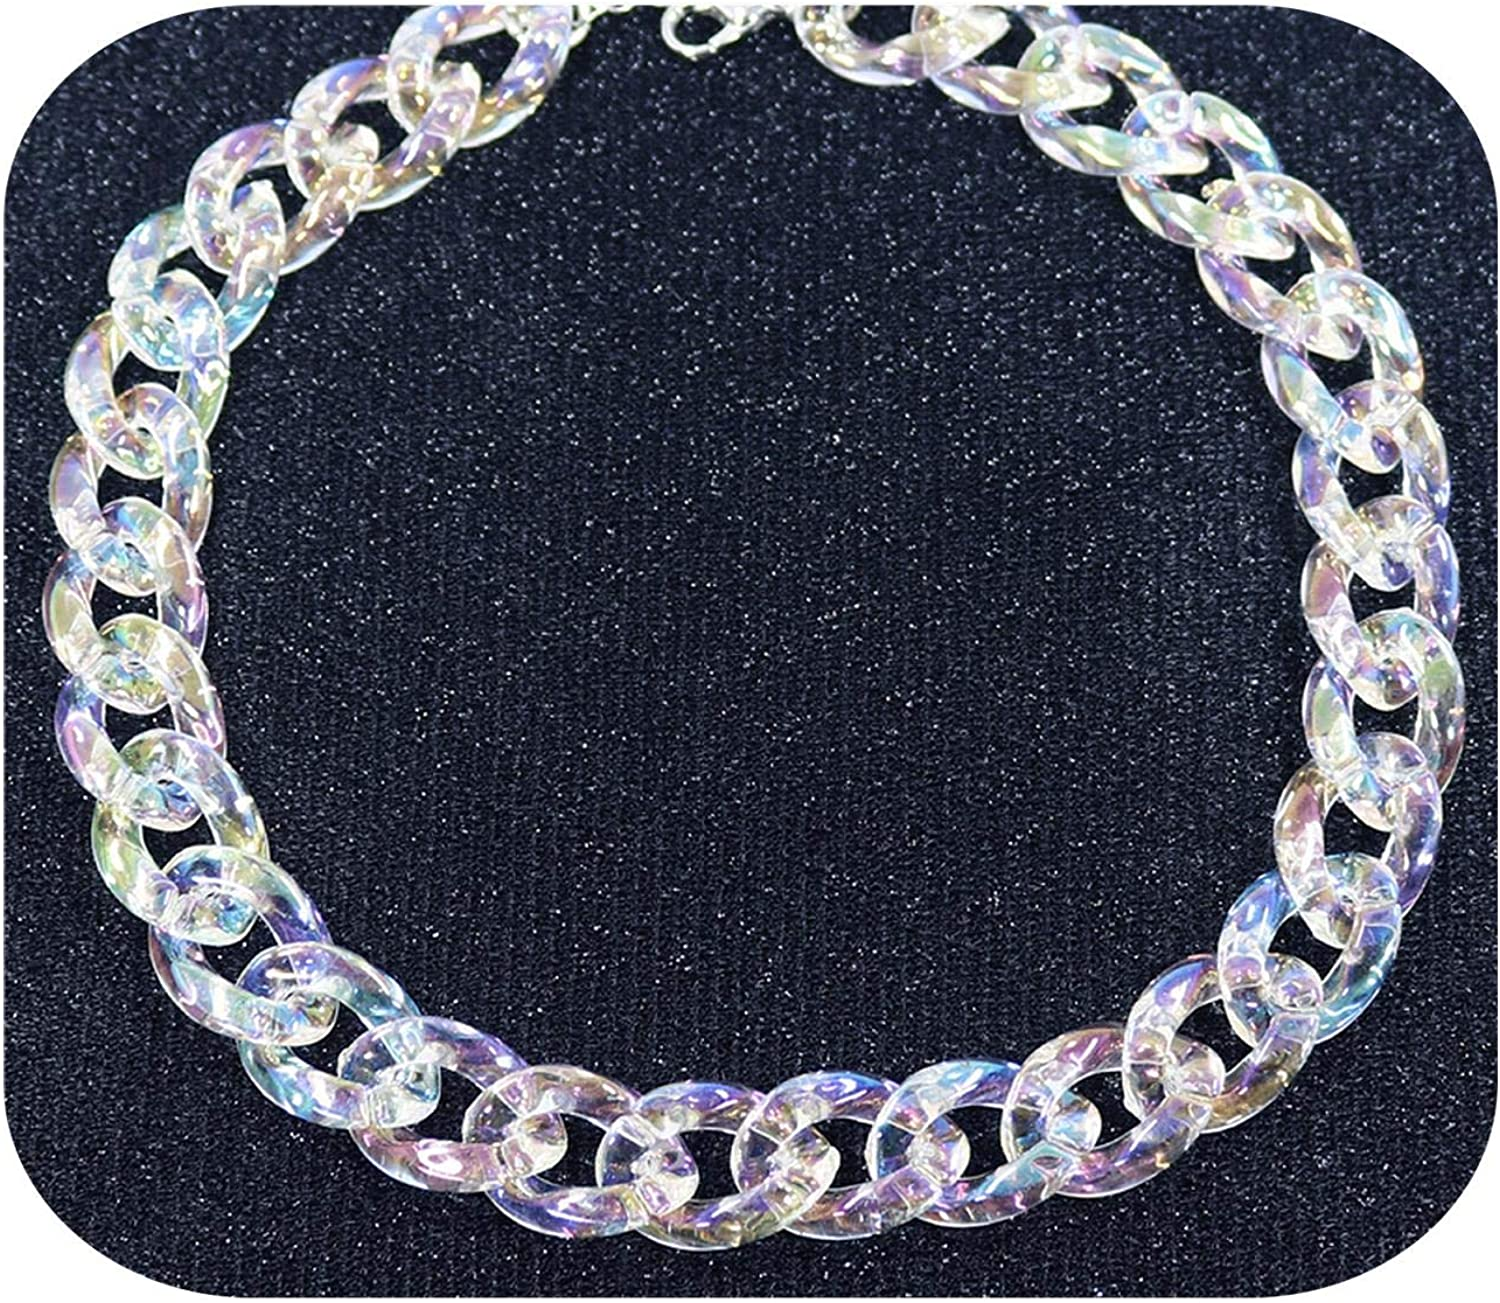 Stainless Steel Chain Clear Lavender Pendant Resin Necklace